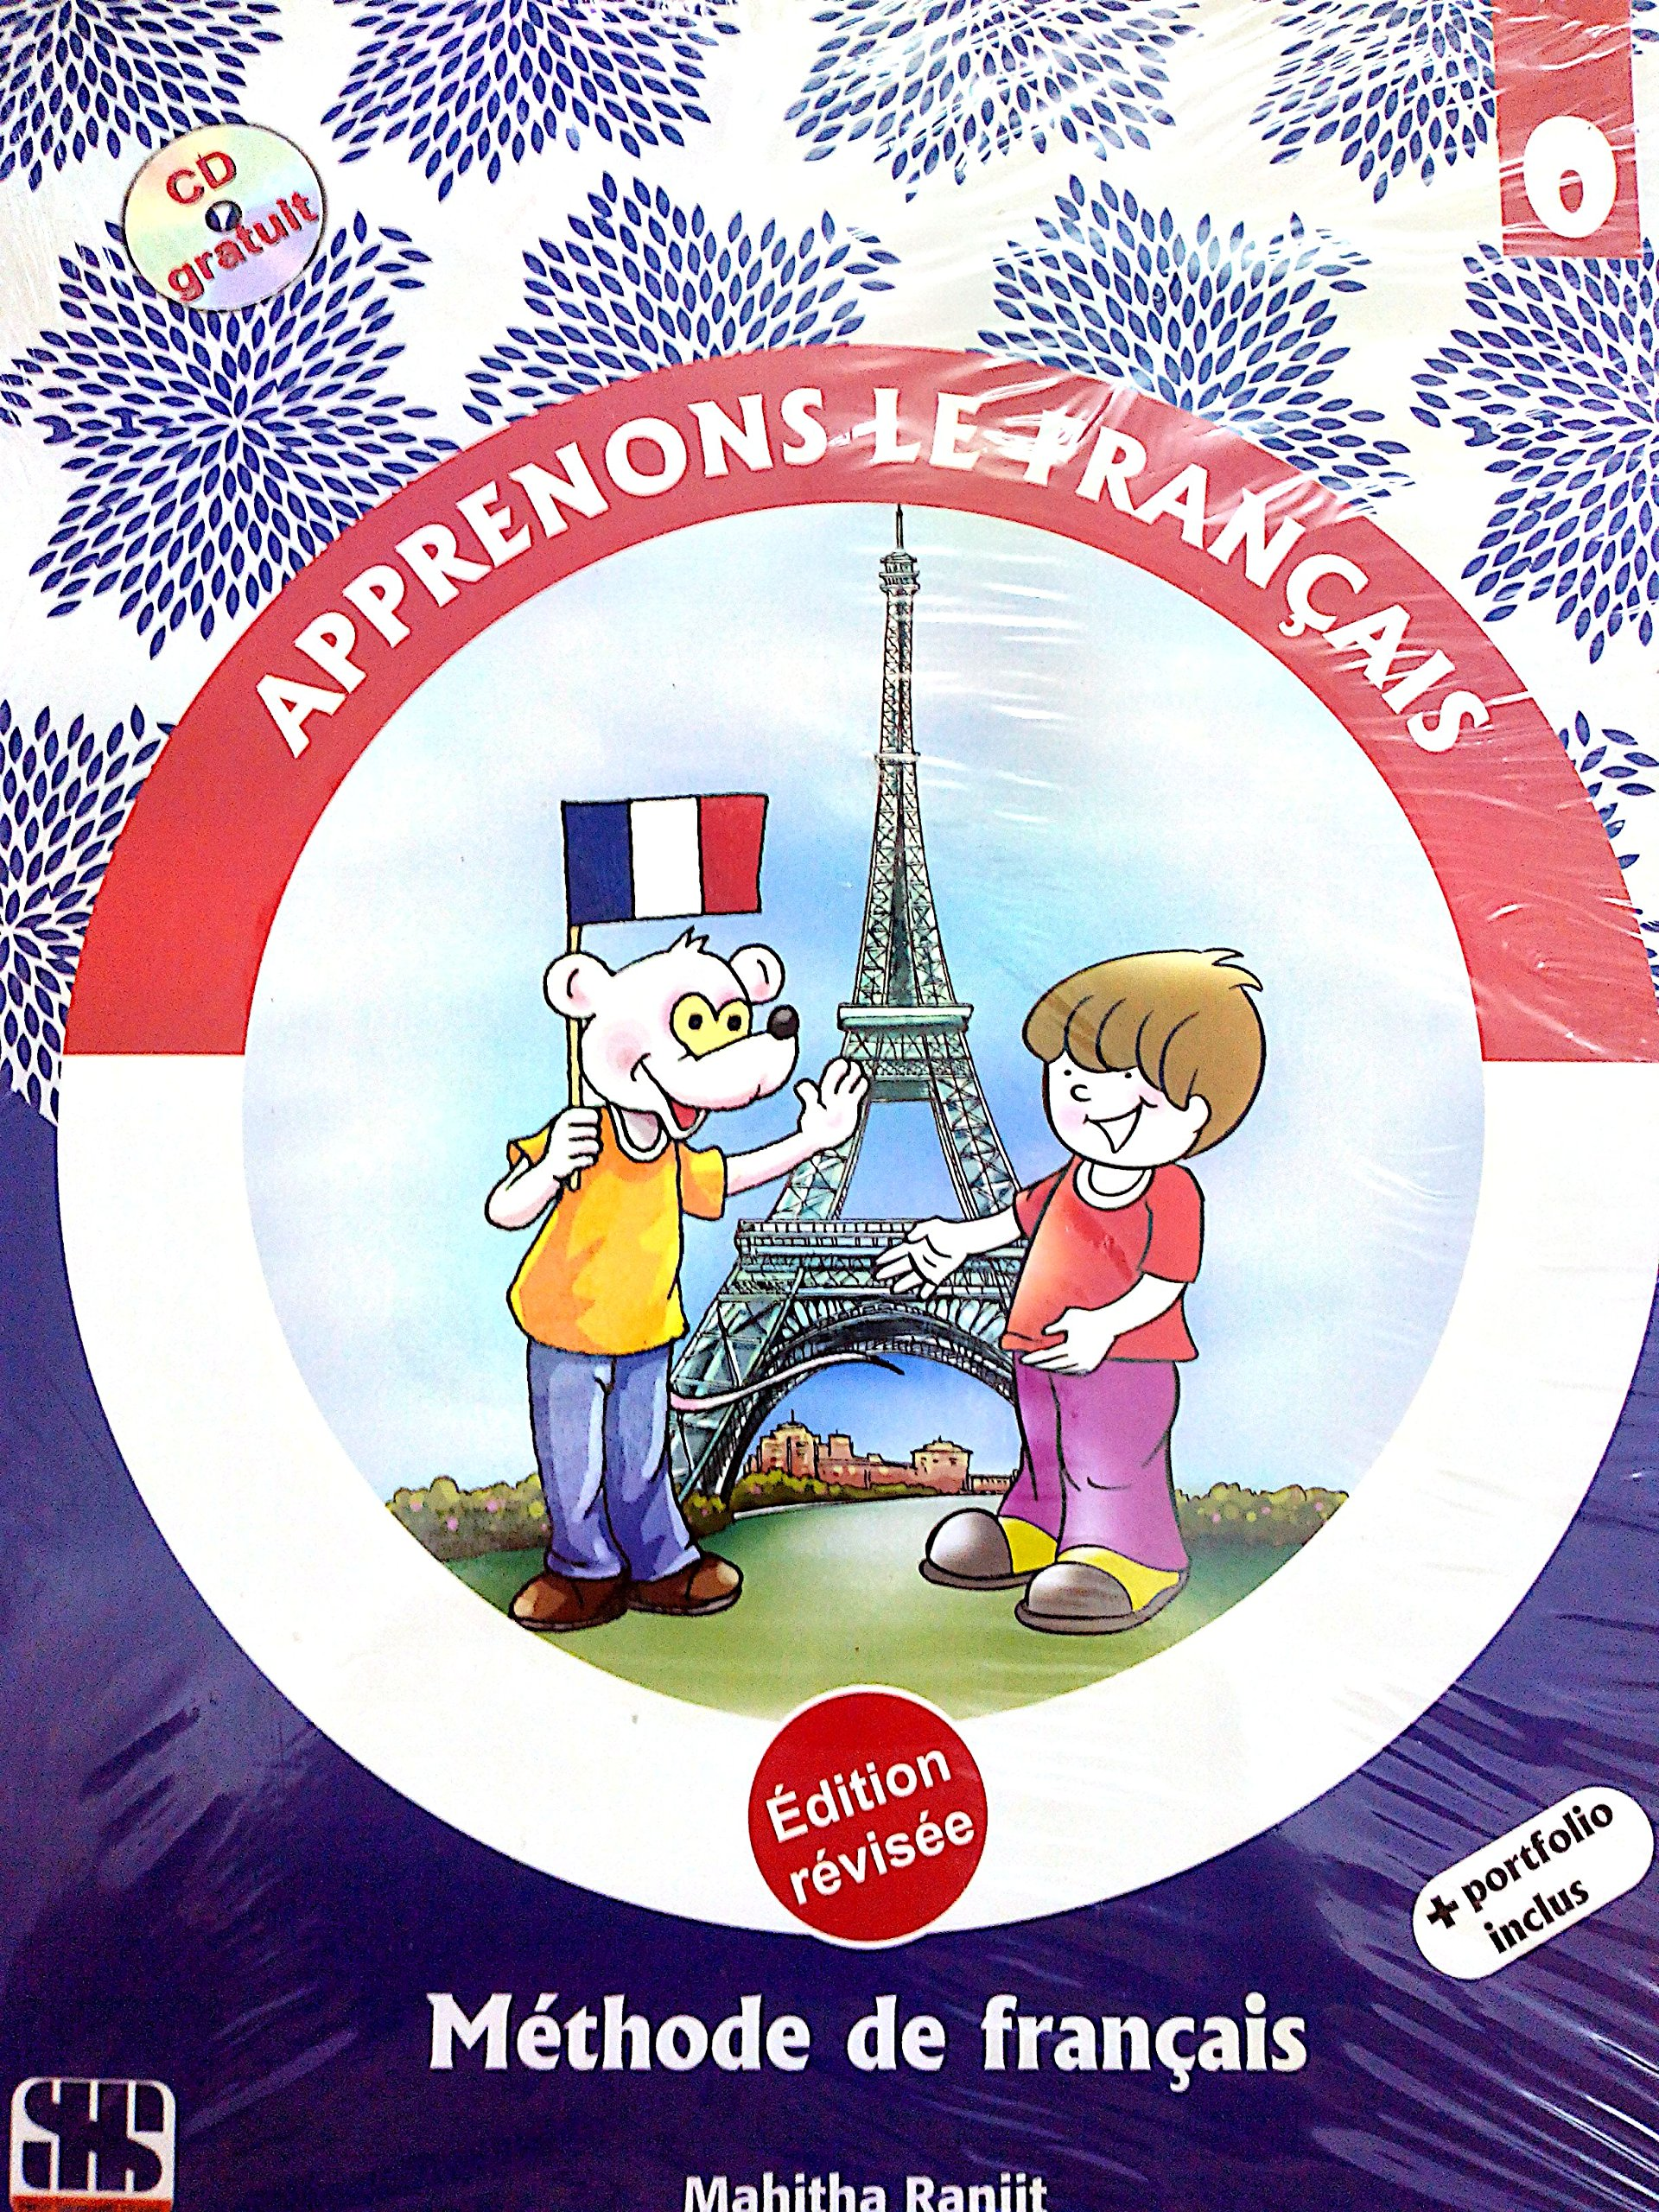 Buy Apprenons Le Francais Methode de Francais 0 Book Online at Low Prices  in India | Apprenons Le Francais Methode de Francais 0 Reviews & Ratings -  Amazon. ...